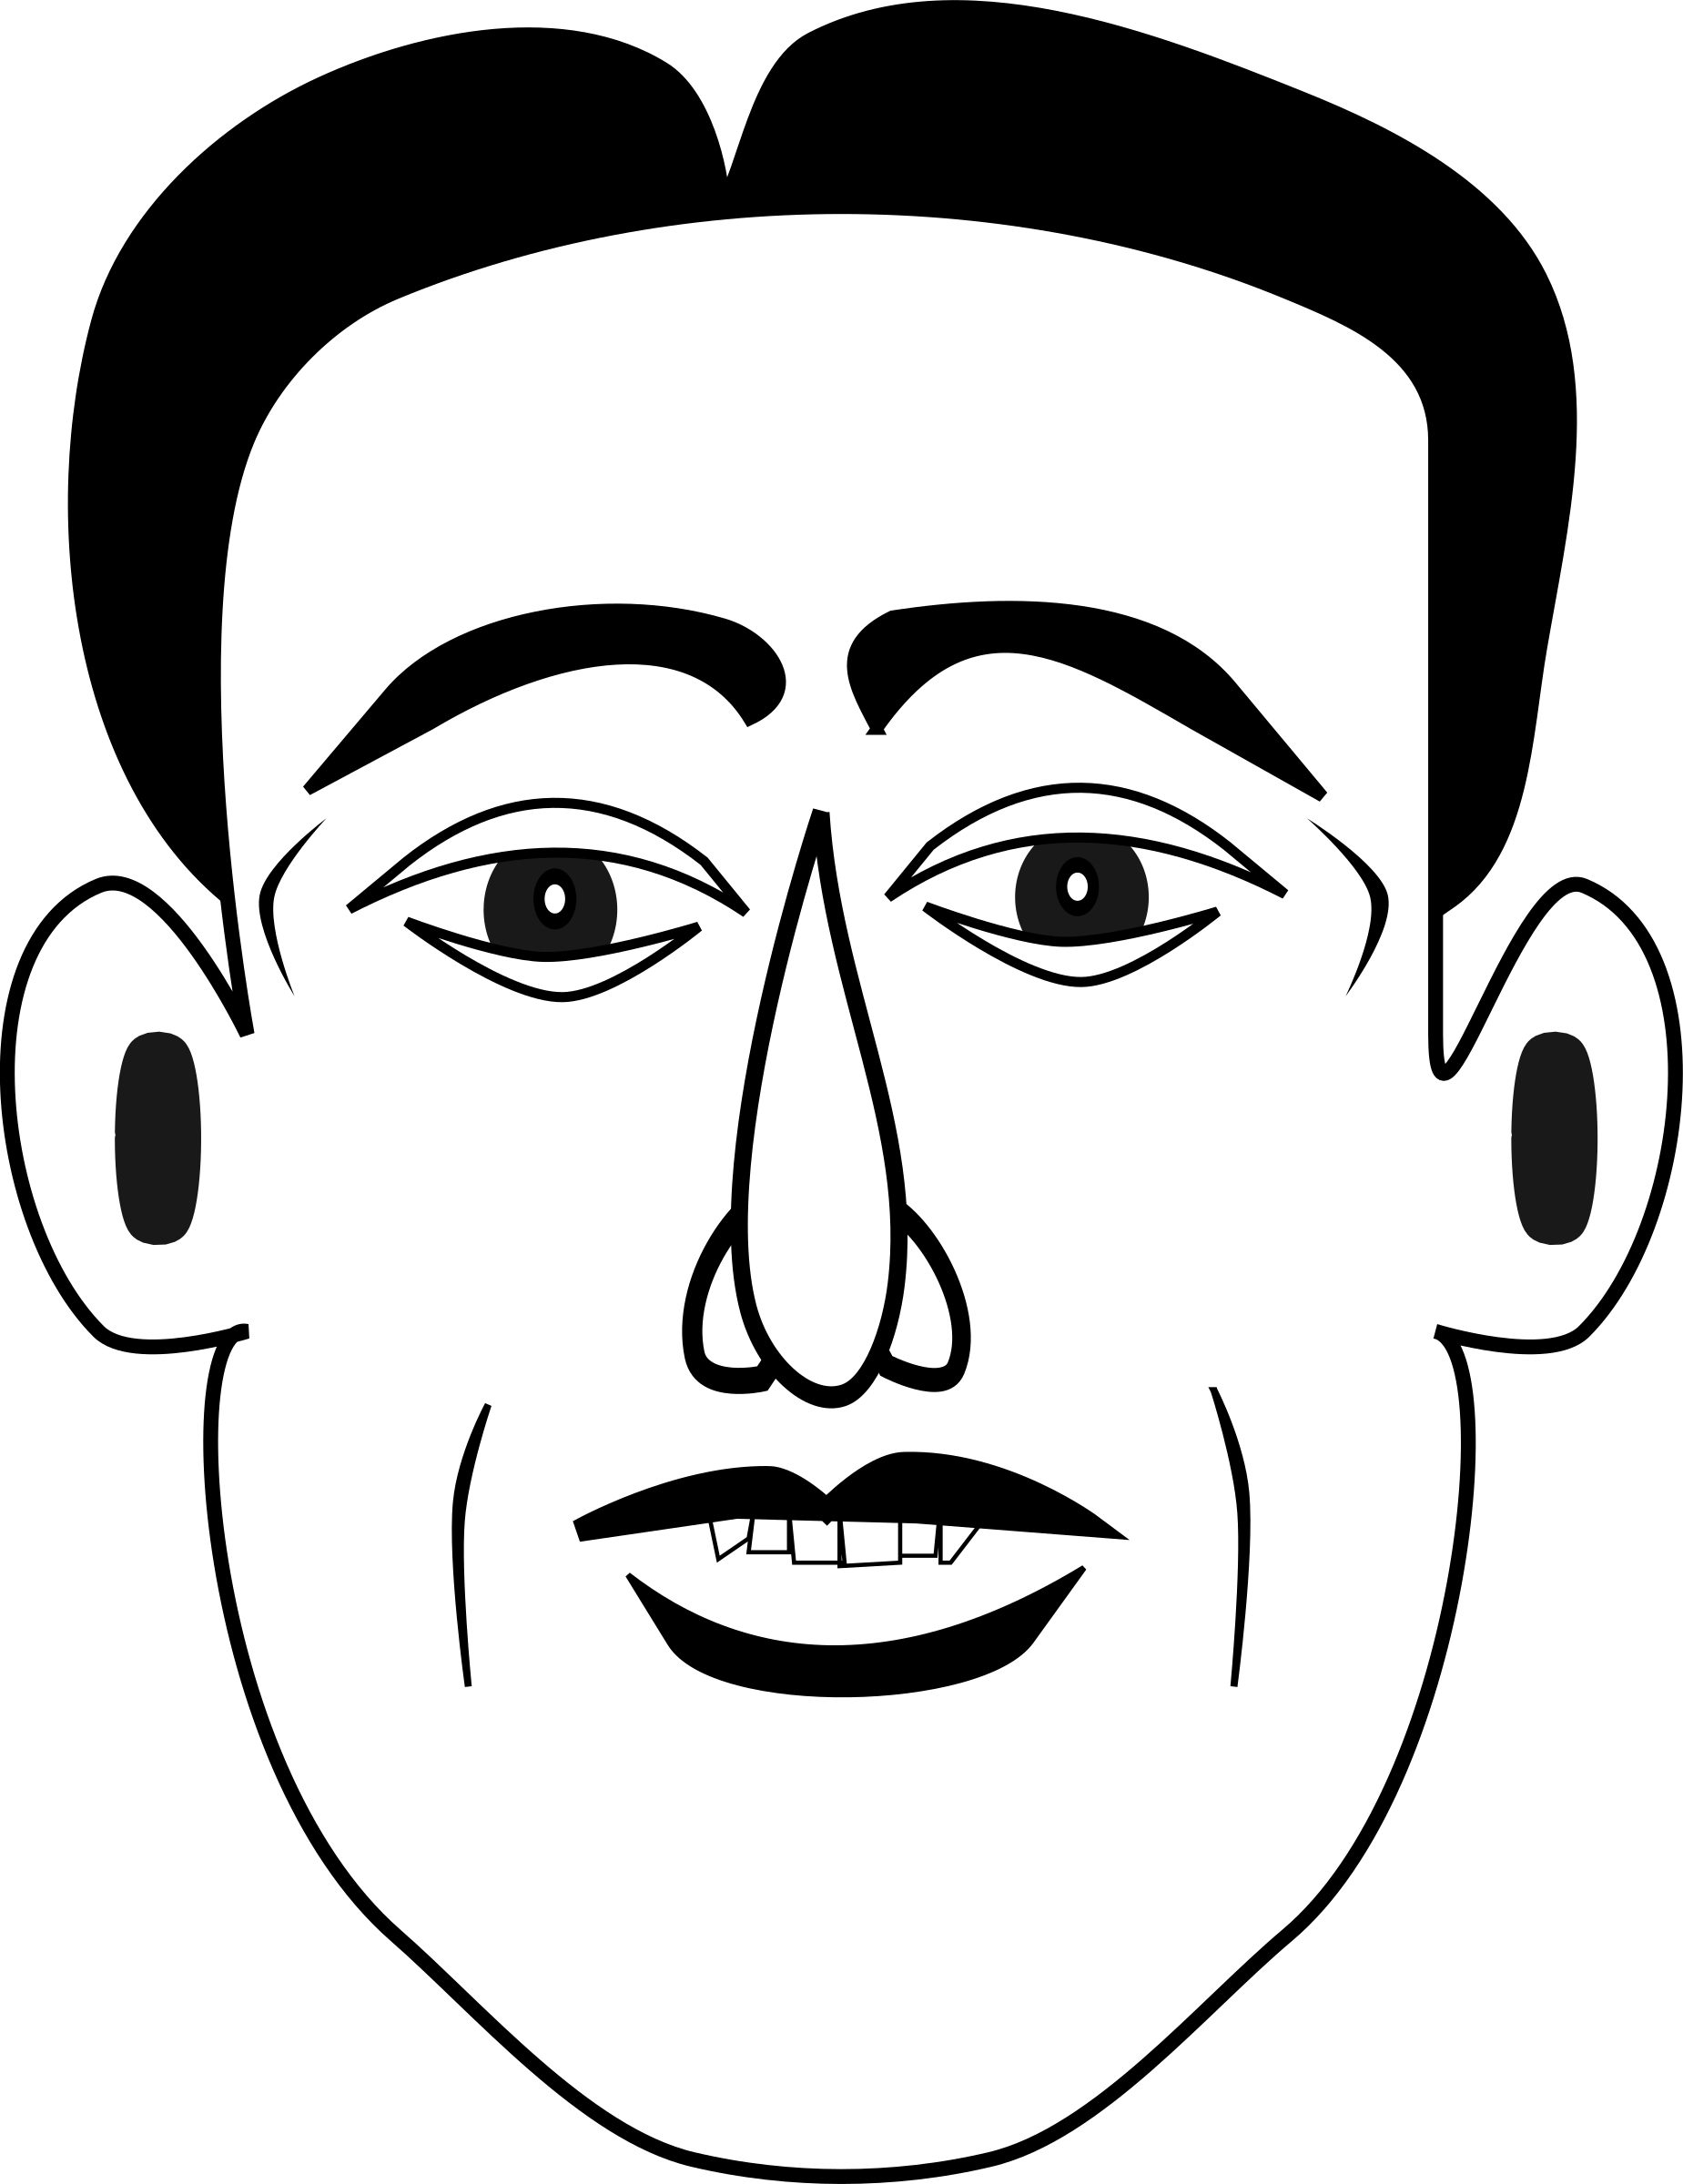 Emotions clipart face drawing. Happy emotion big image